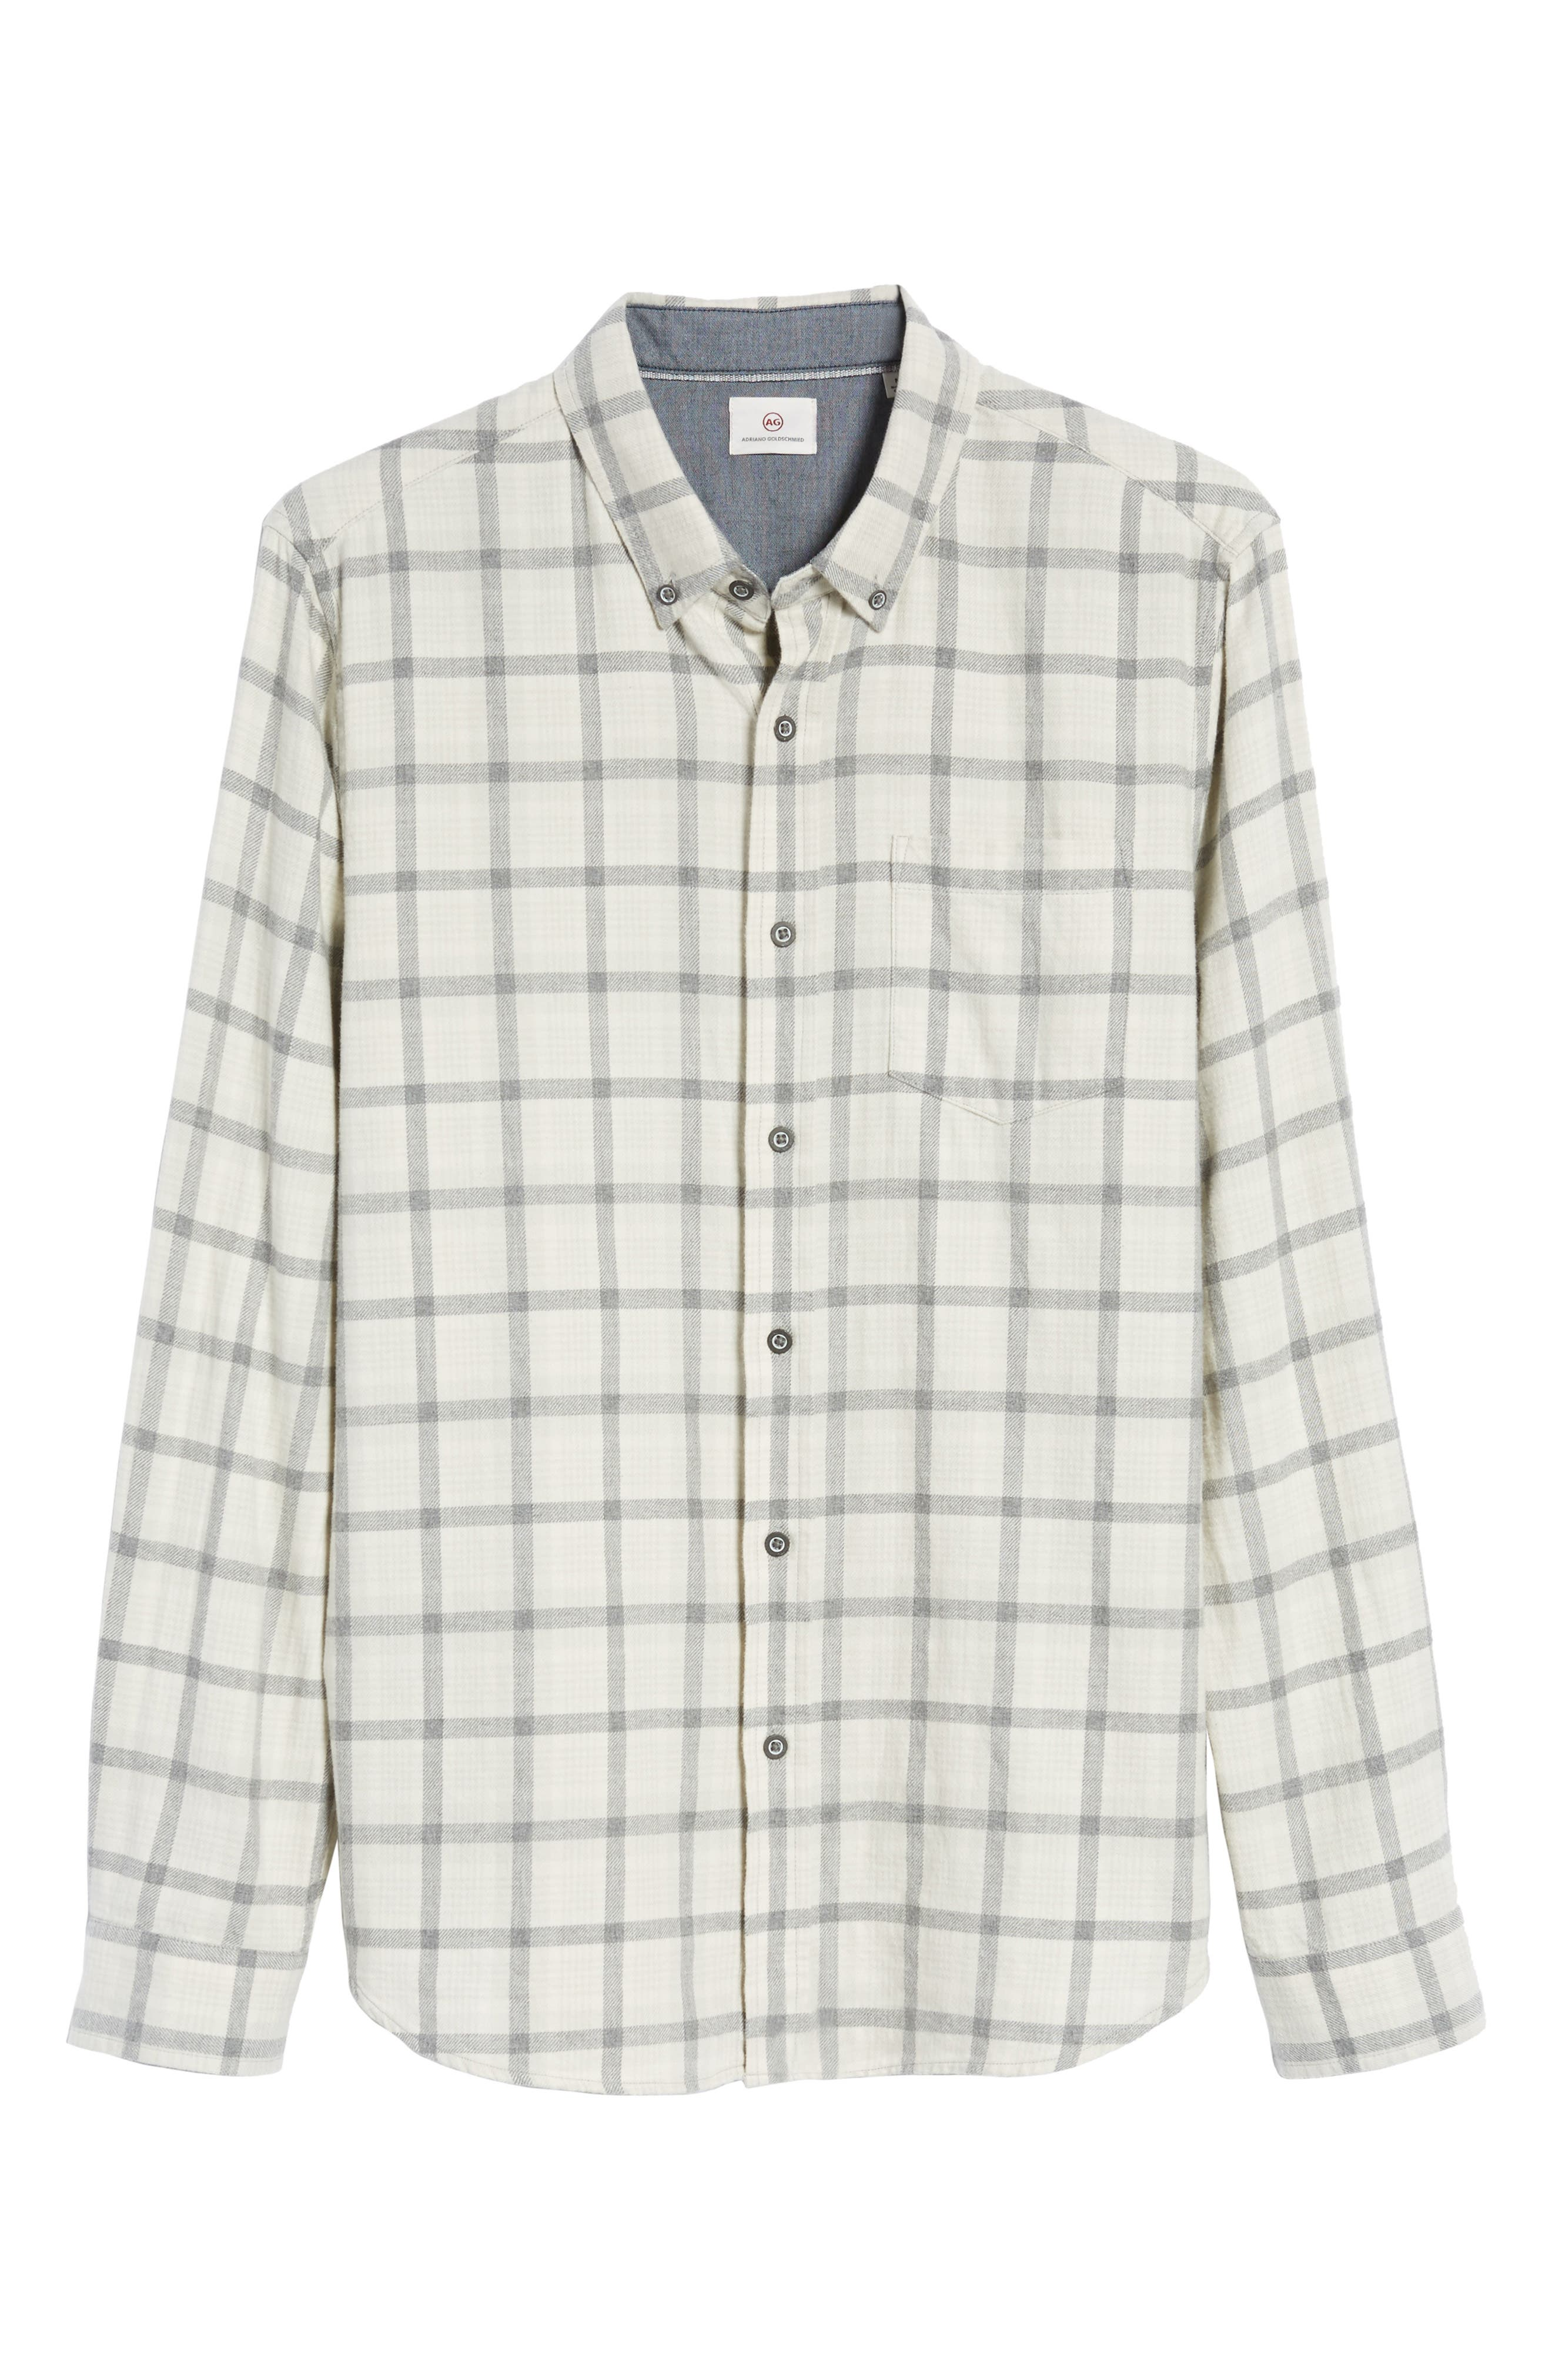 Grady Slim Fit Plaid Sport Shirt,                             Alternate thumbnail 6, color,                             100